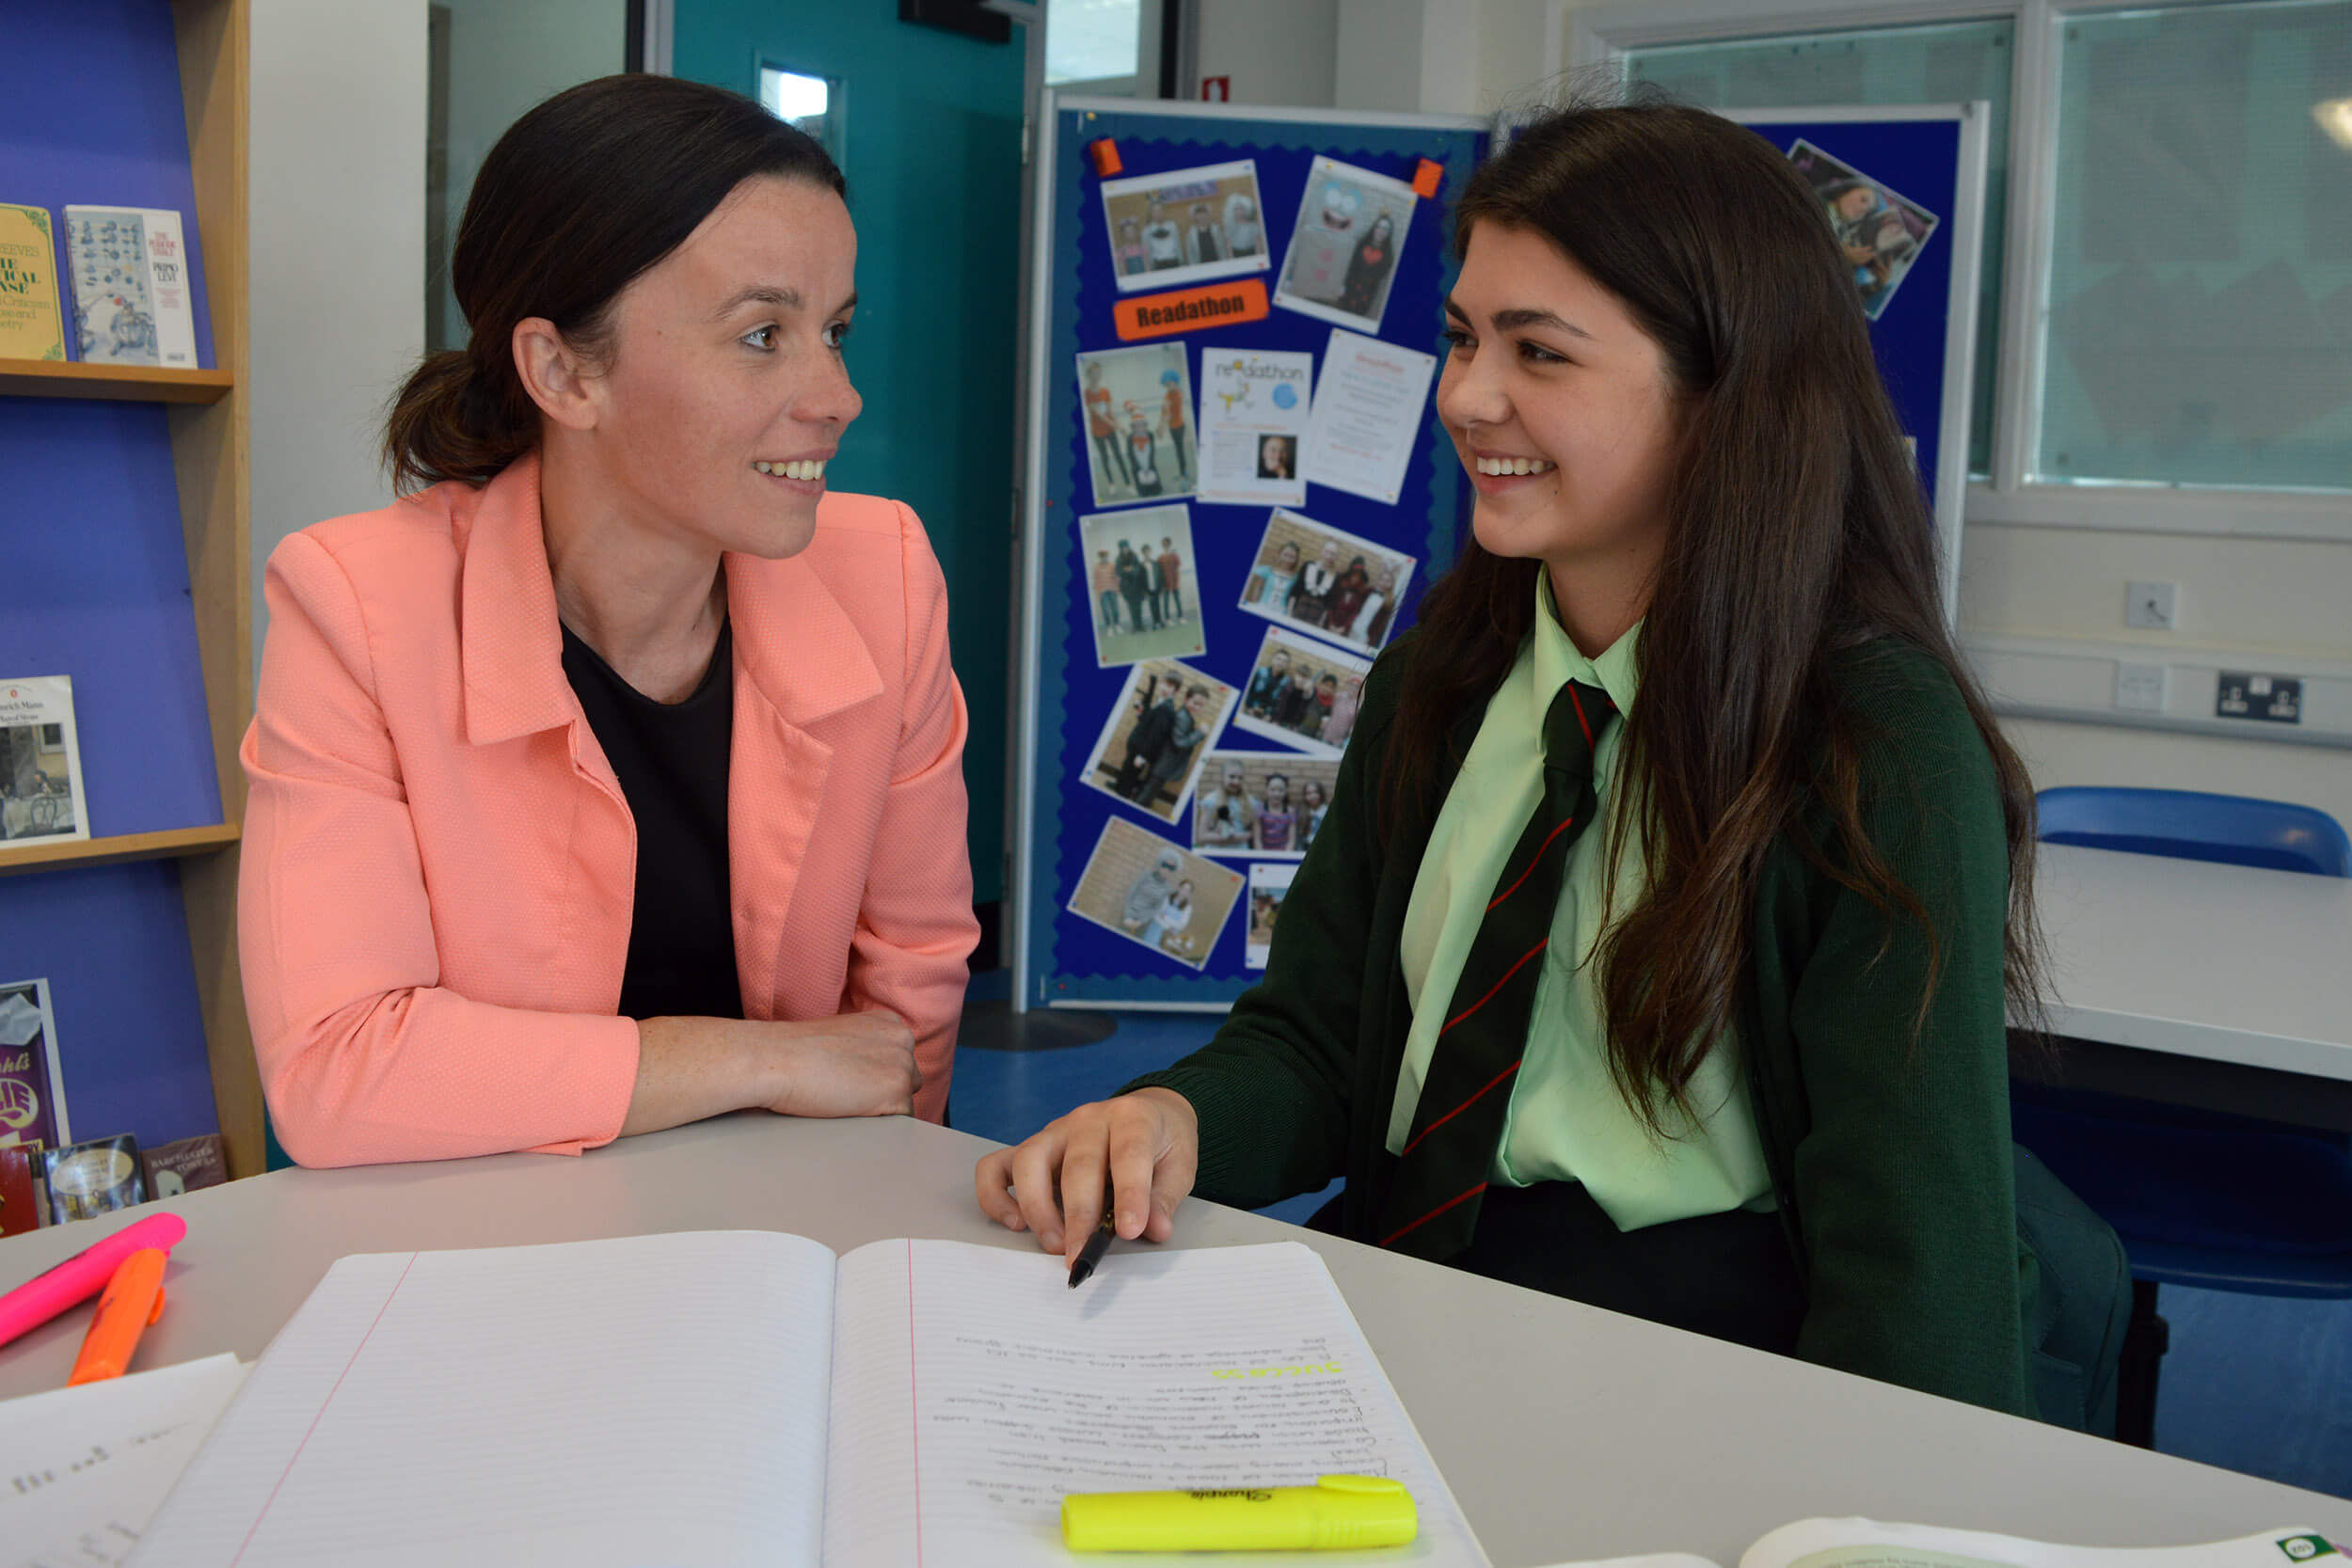 Pastoral Support - Our modern co-educational grammar school strives to develop well-rounded, confident young adults.